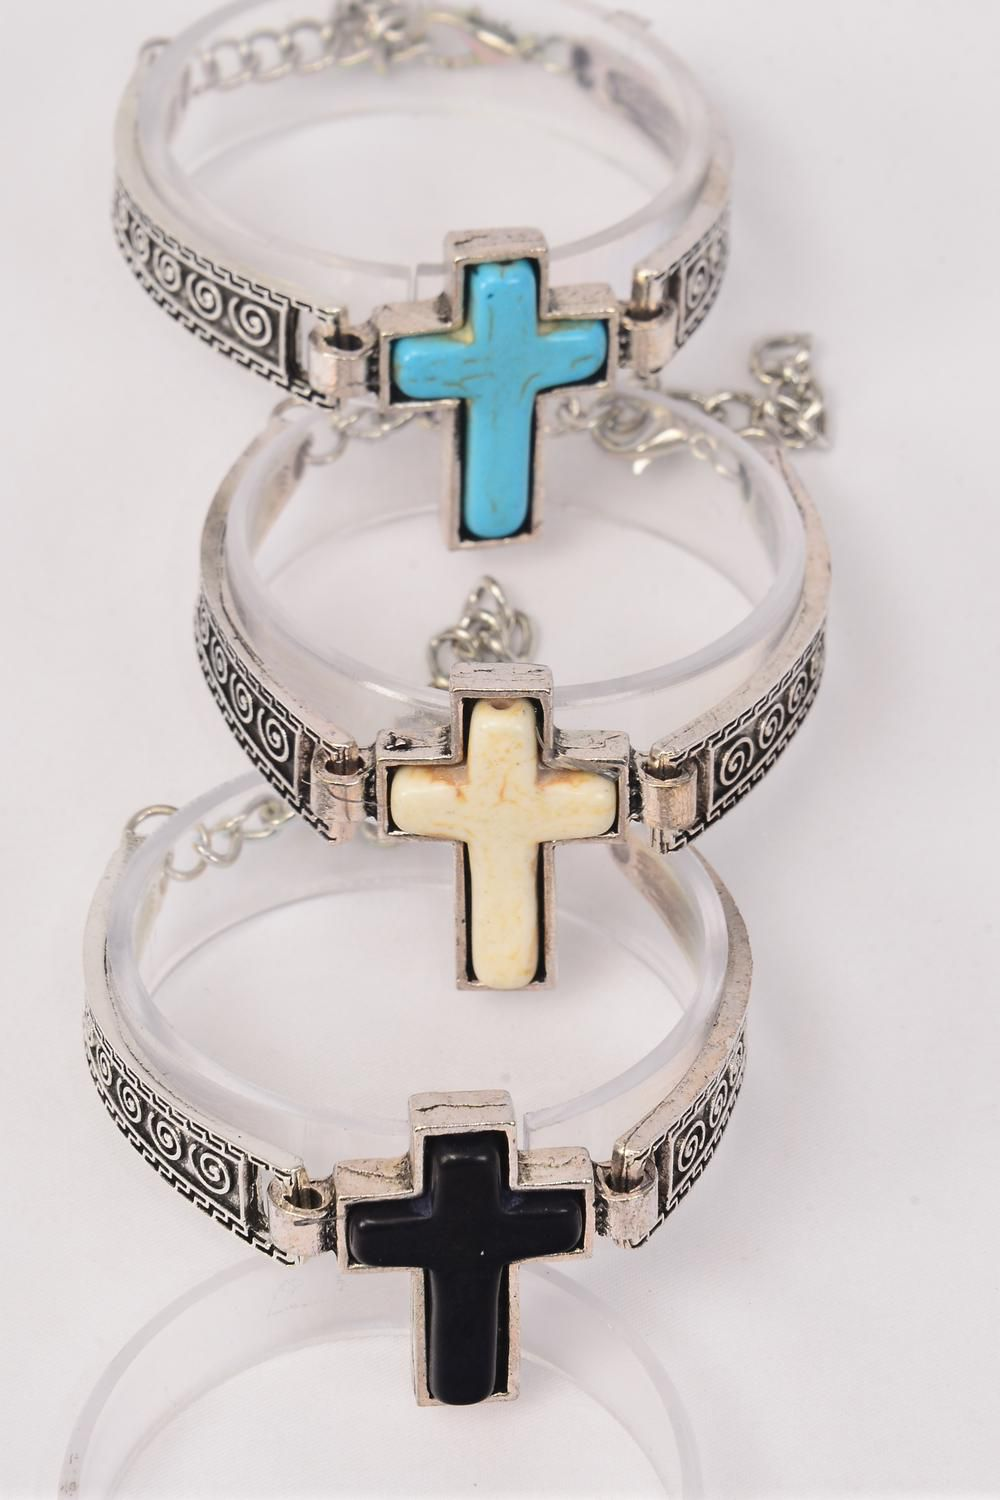 "Bracelet Cross Semiprecious Stone/DZ Cross- 1.5""x 1"",Adjustable Length,4 Black,4 Ivory,4 Turquoise Asst,Hang Tag & OPP Bag & UPC Code"